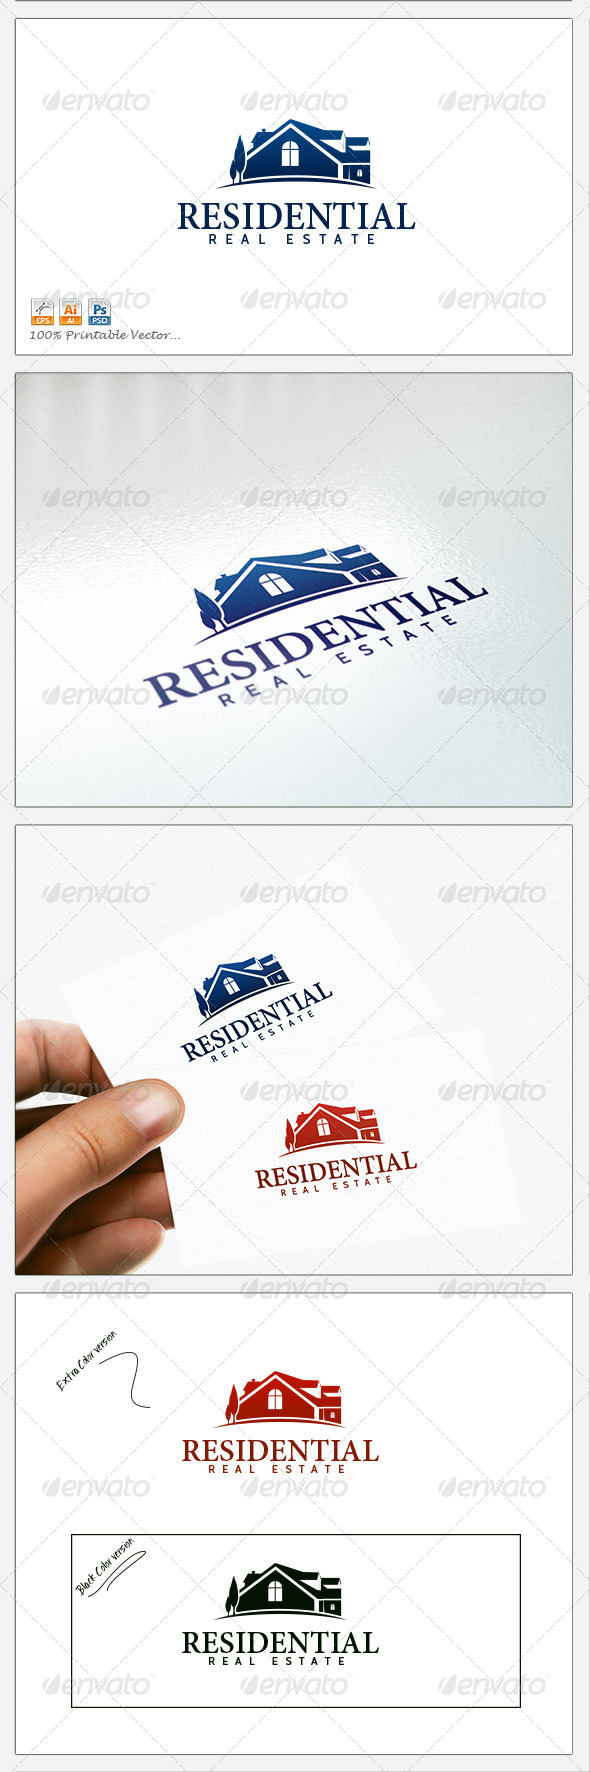 Arend Real Estate - Buildings Logo Templates